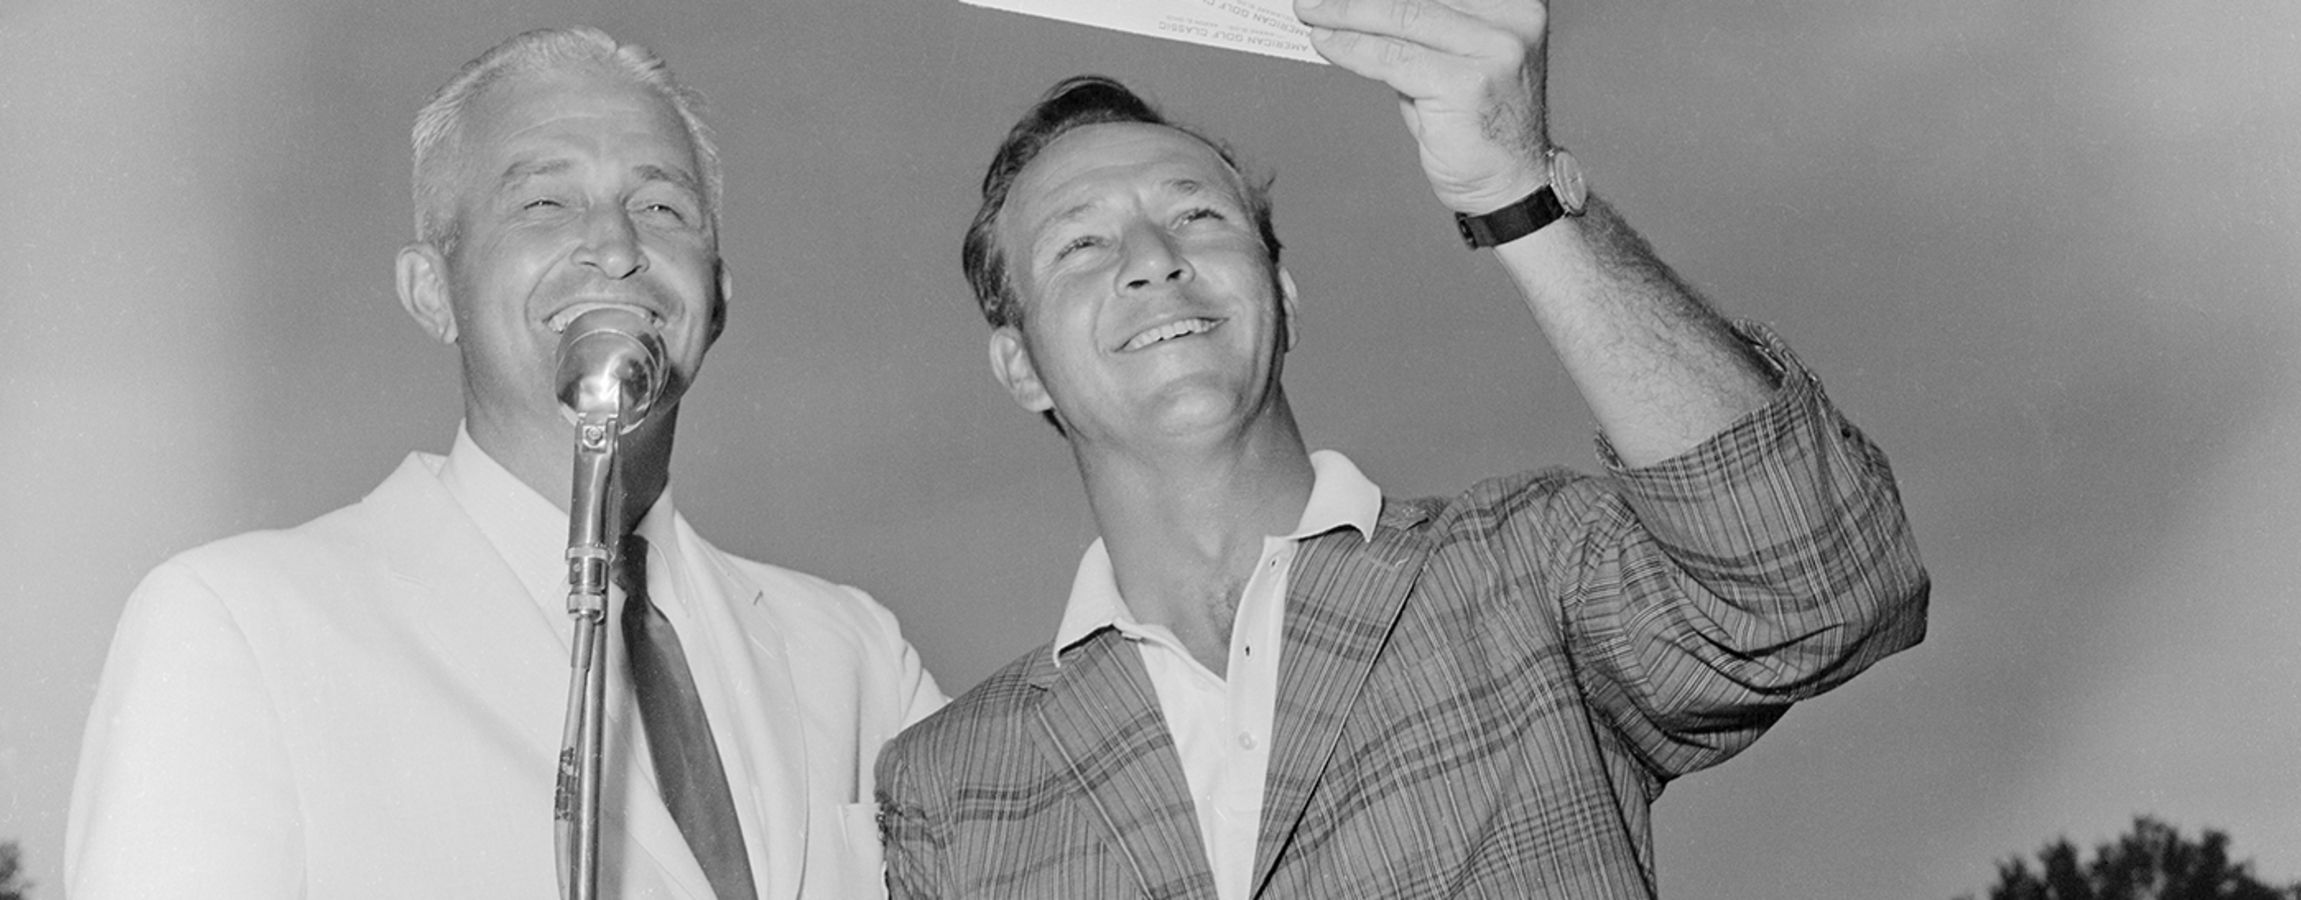 Land of Legends: Arnold Palmer's History at Firestone